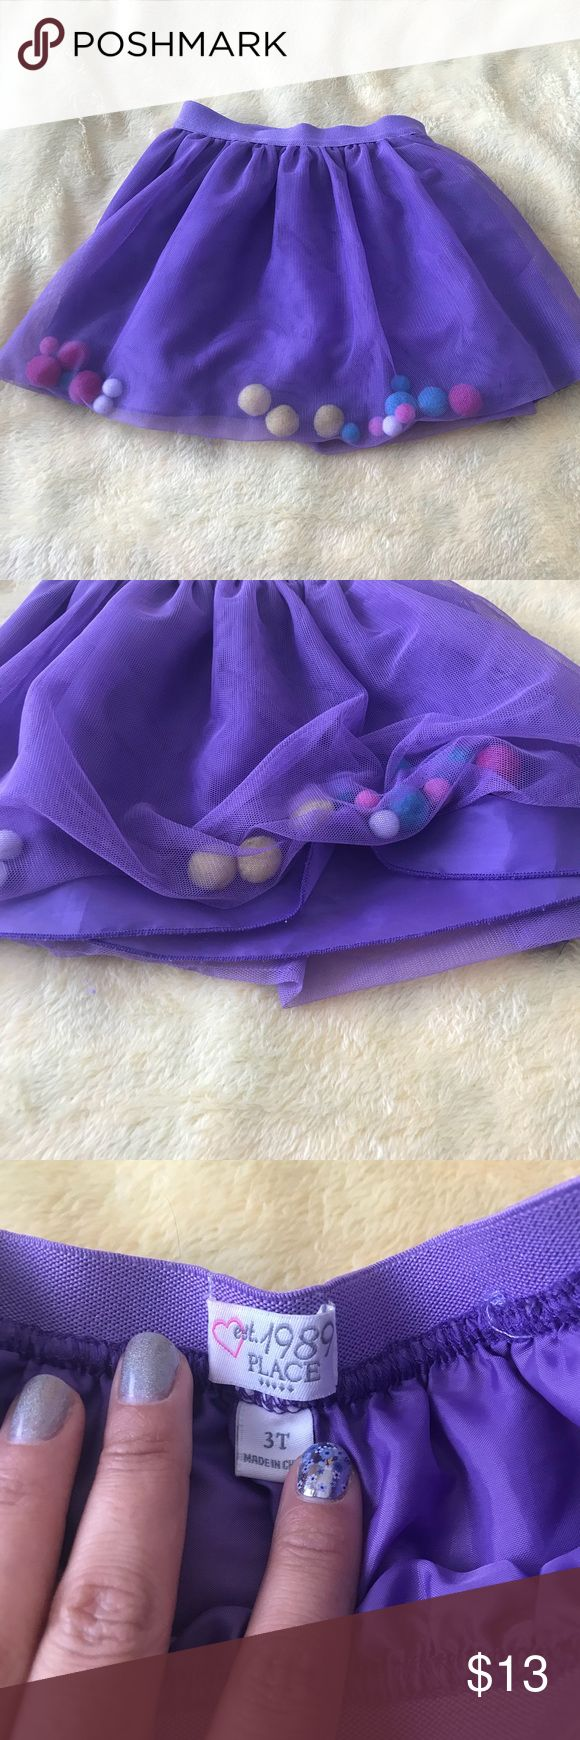 Purple Pom Pom Skirt Children's Place - Purple Fully Lined Skirt with Pom Poms inside the tulle. Size 3T  Gently Used in GREAT condition The Children's Place Bottoms Skirts